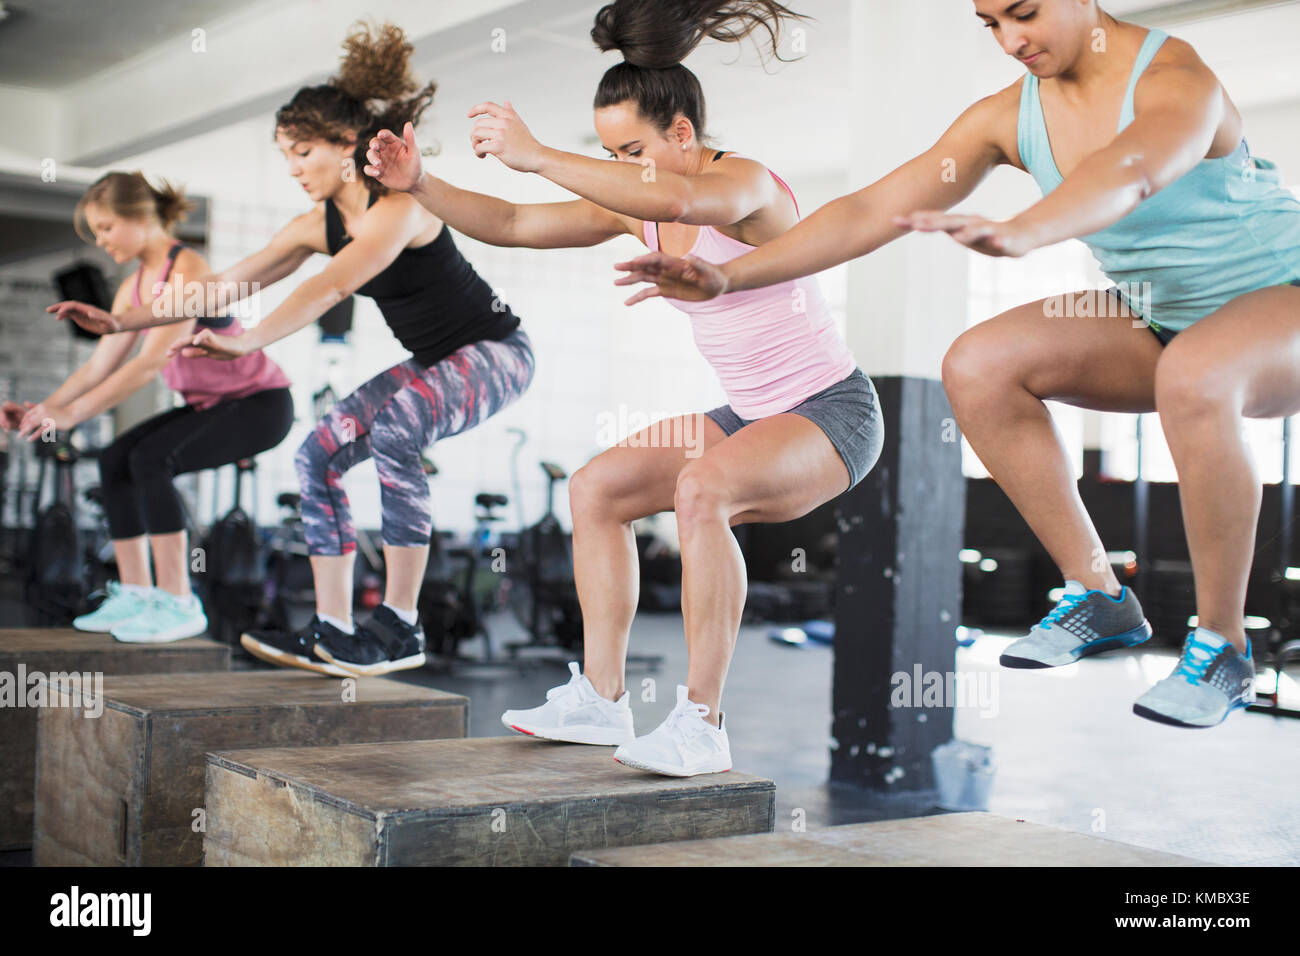 Determined women doing jump squats on boxes in exercise class Stock Photo